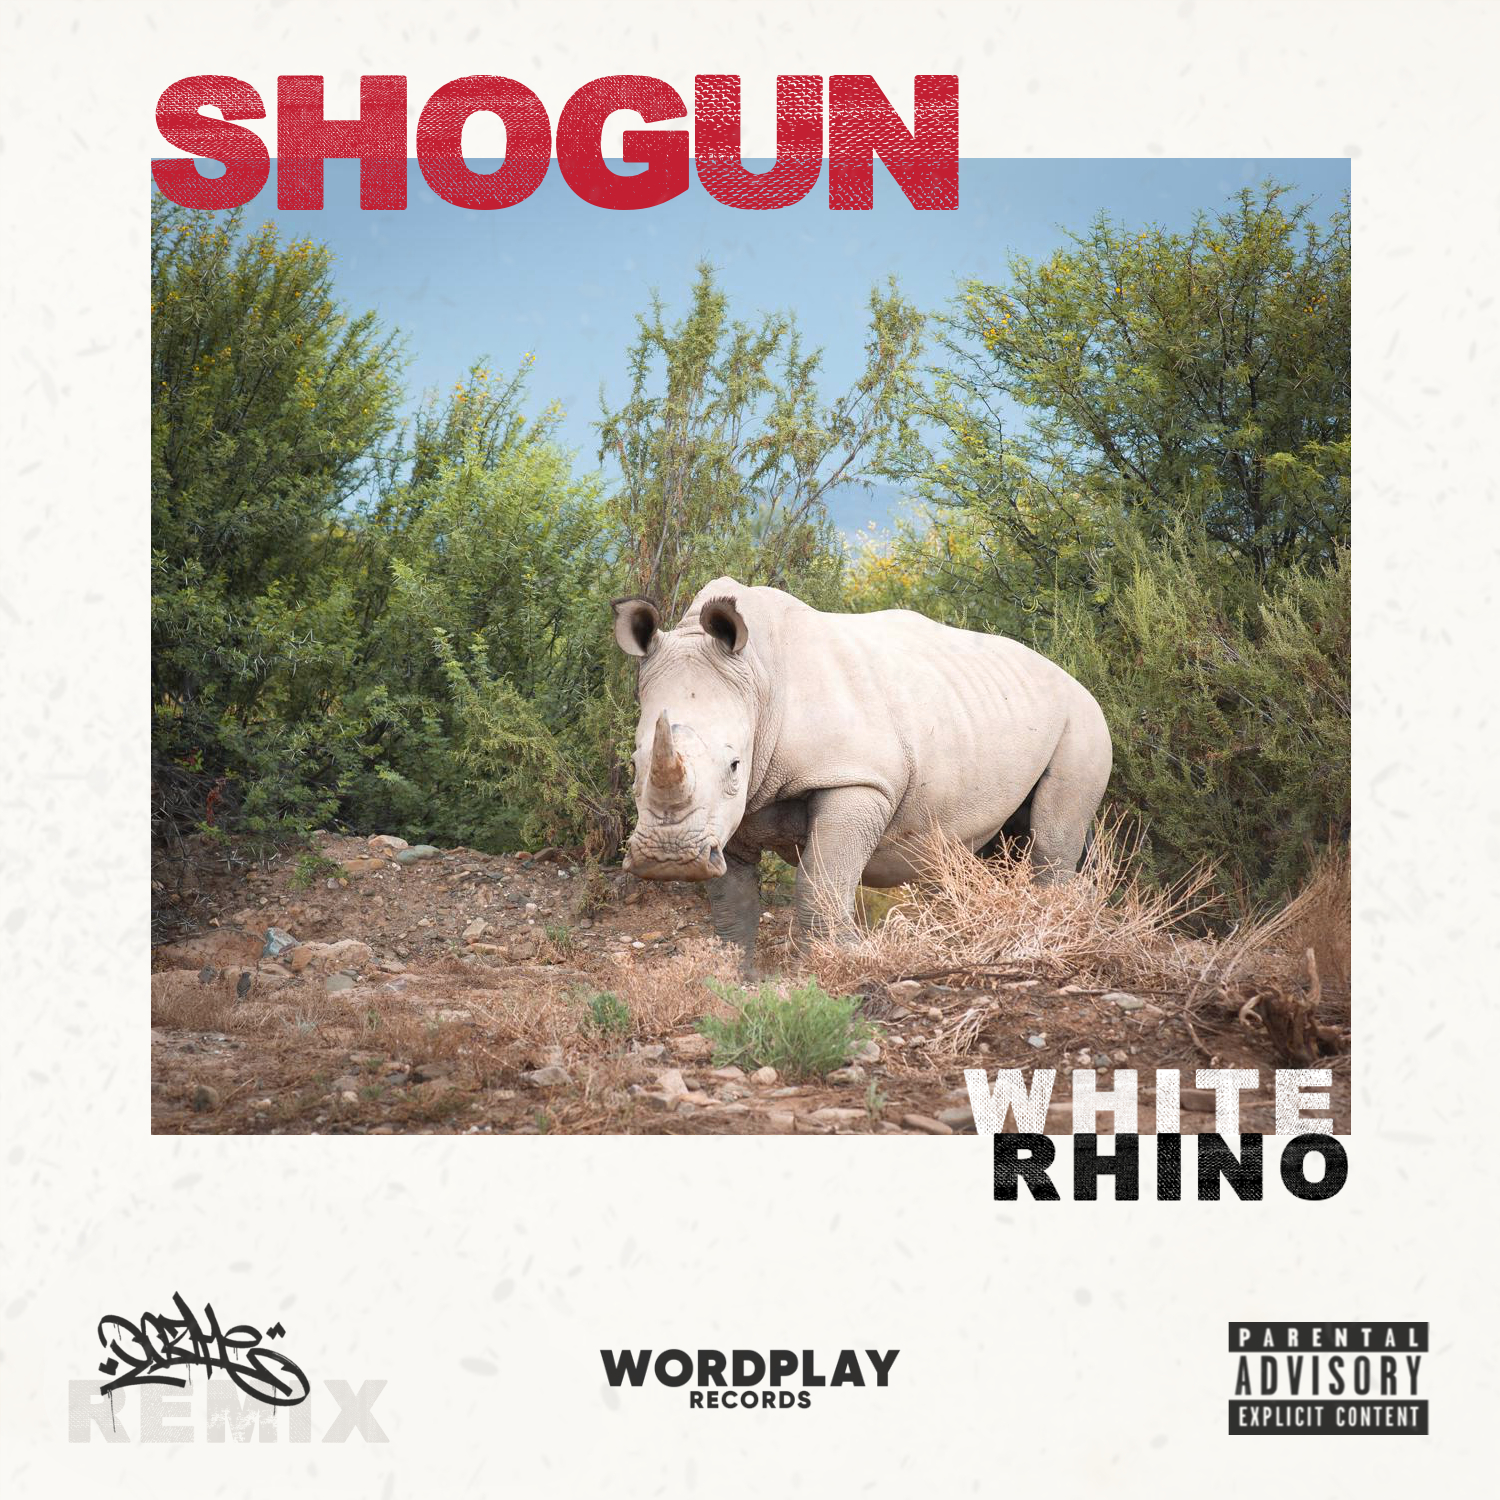 SHOGUN RMX ART NEW NEW.JPG